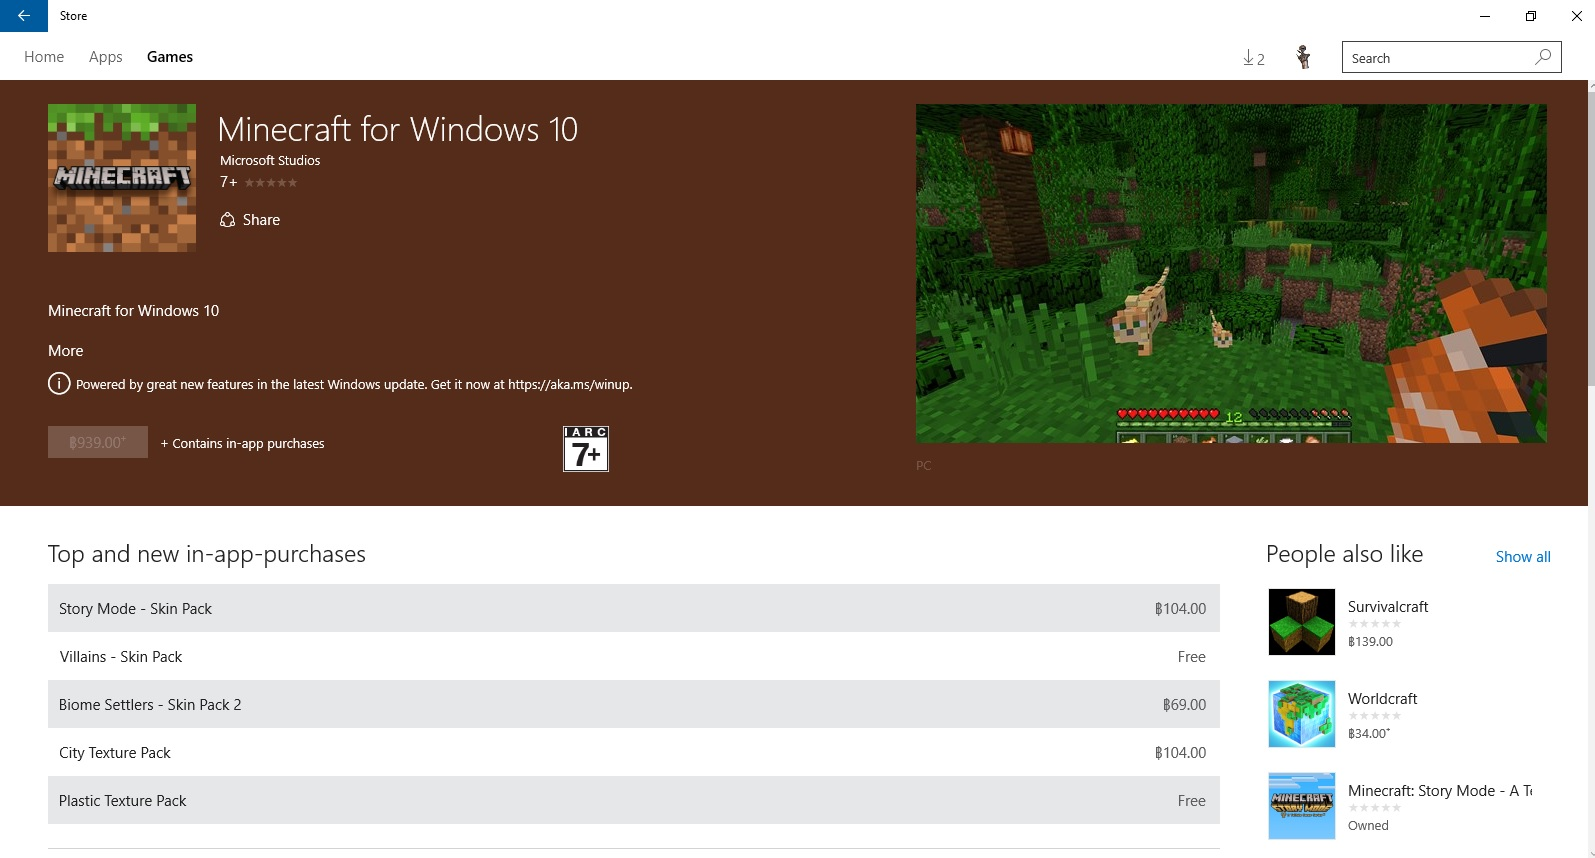 i  redeemed minecraft for window 10 but in store it not have install button 429e8ec2-953f-4018-93ea-d30a1119a814?upload=true.jpg